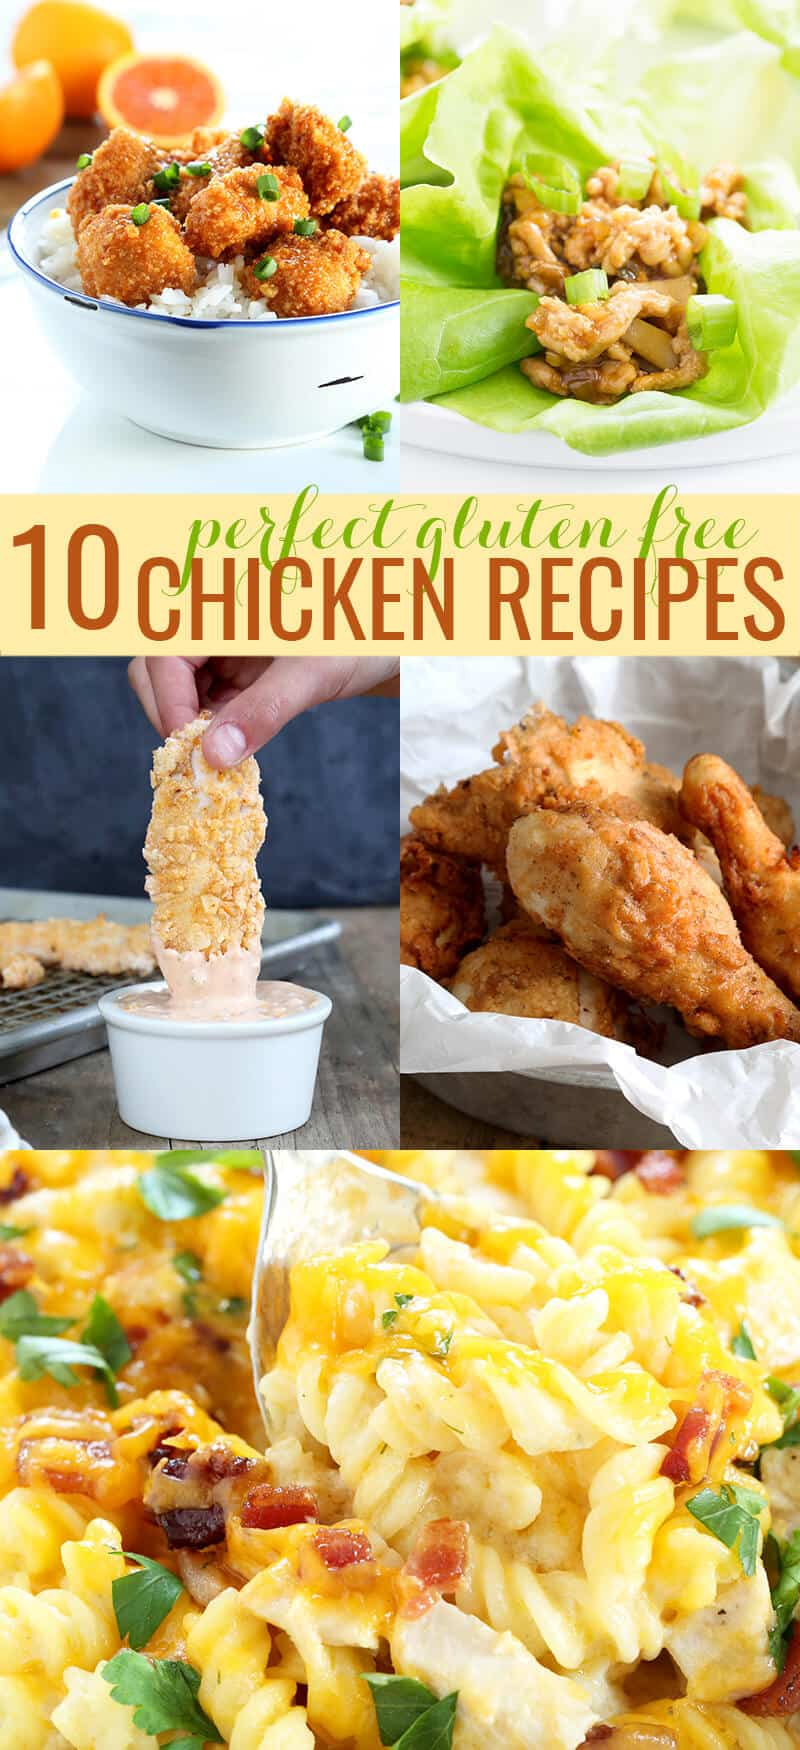 These 10 easy gluten free chicken recipes are the very best in everything from baked chicken casseroles and chicken fingers to take-out style orange chicken and fried chicken that tastes just like KFC!